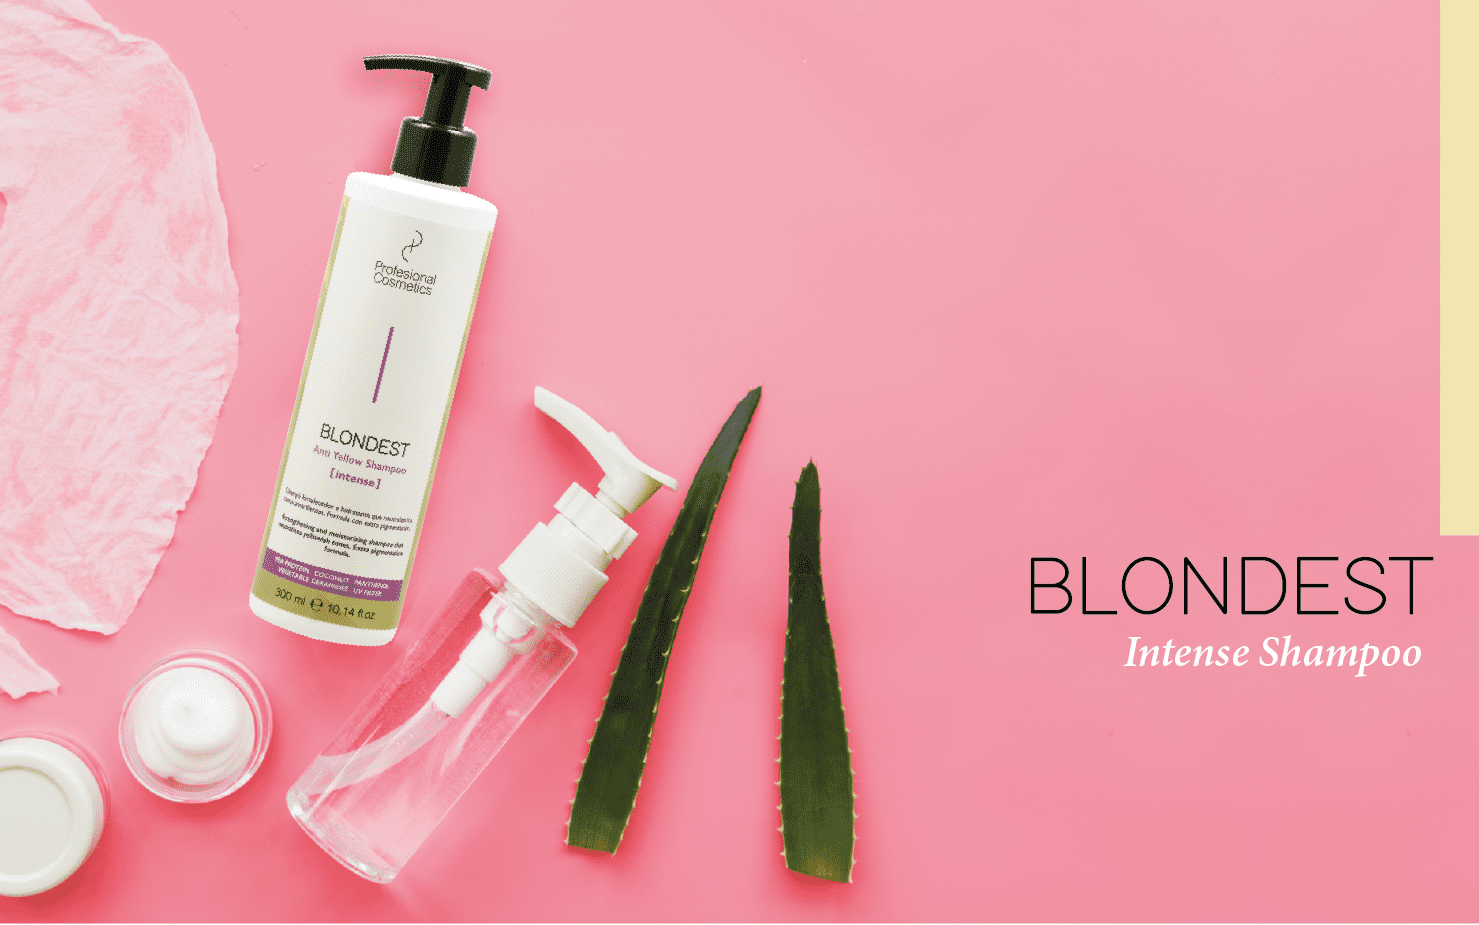 Blondest Intense Shampoo: the blondest one.